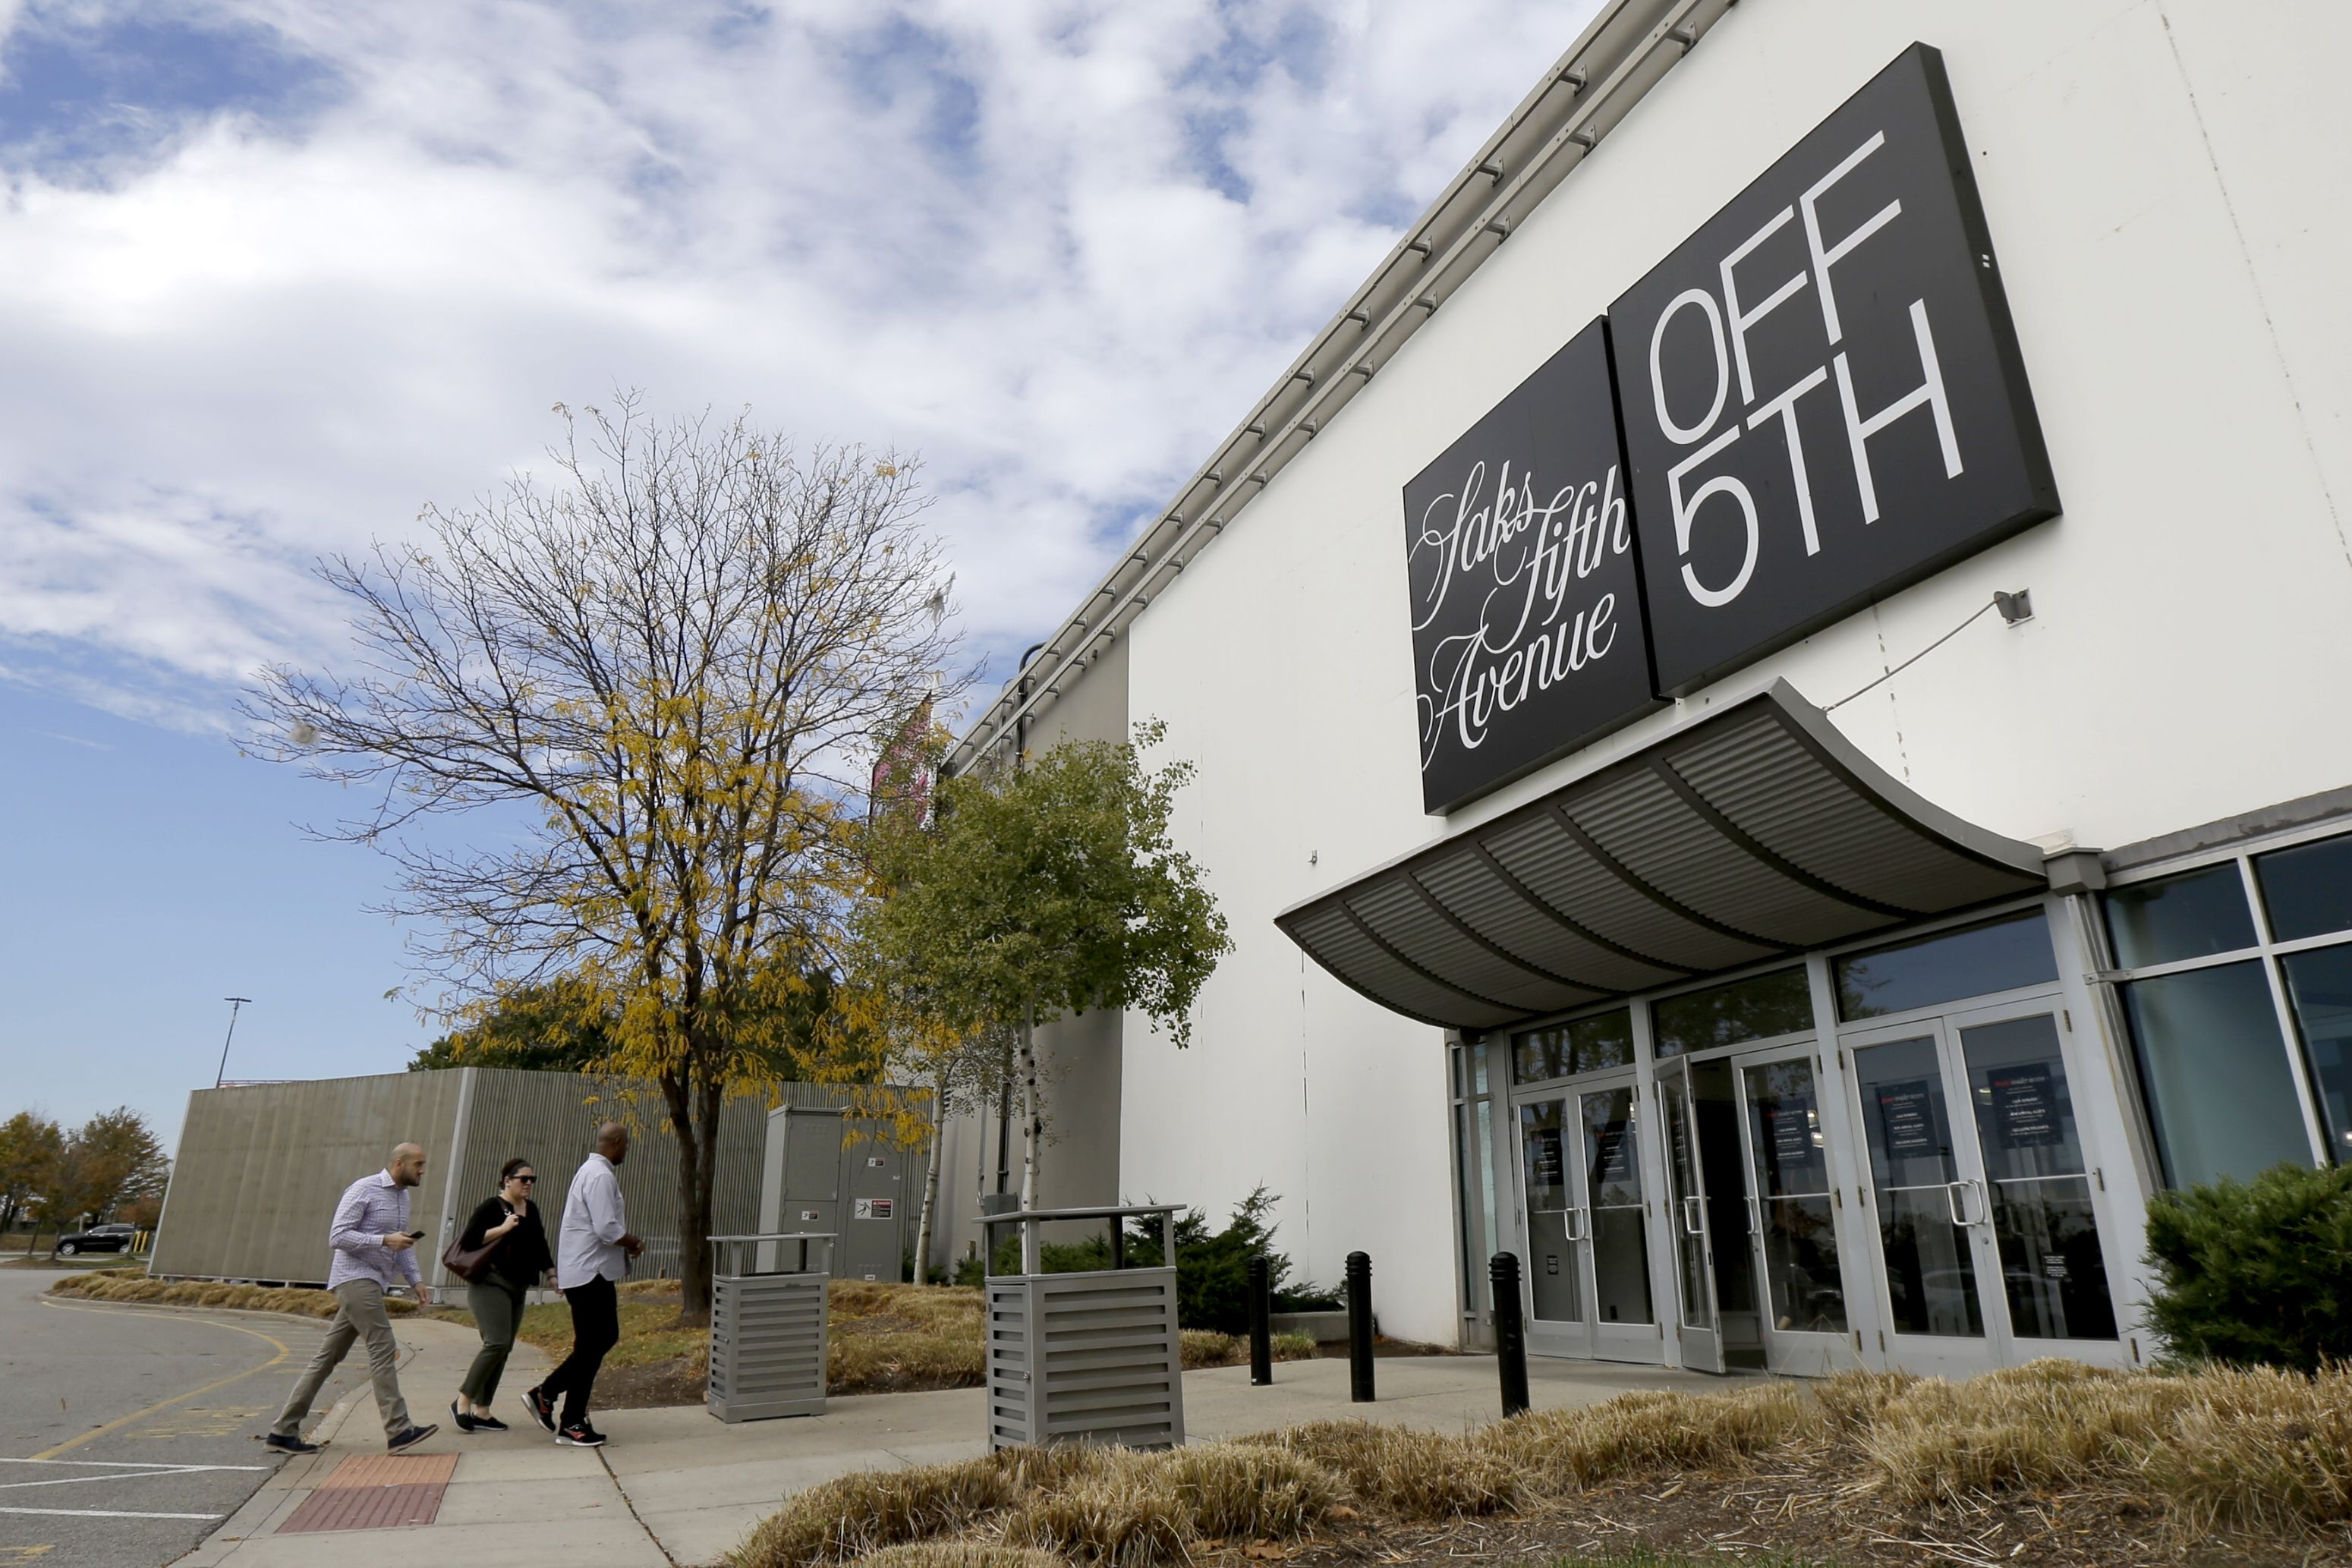 Shoppers walk toward a Saks Fifth Avenue OFF 5TH department store at Jersey Gardens Mall, in Elizabeth, N.JNew Jersey Retailer Stores, Elizabeth, USA - 25 Oct 2017